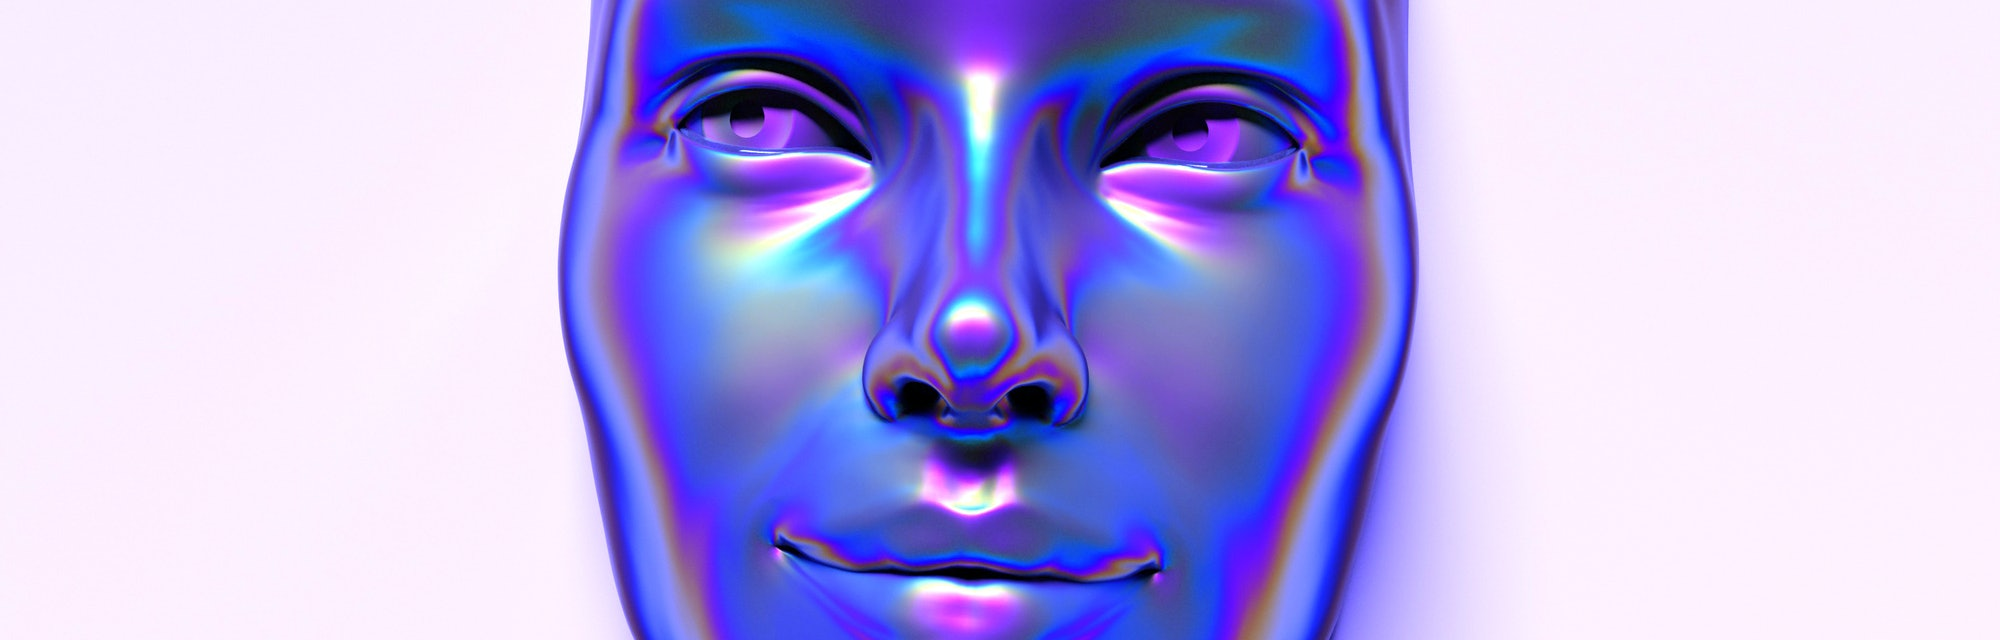 Abstract 3D render illustration of holographic human face in the wall, robotic head made of glossy i...